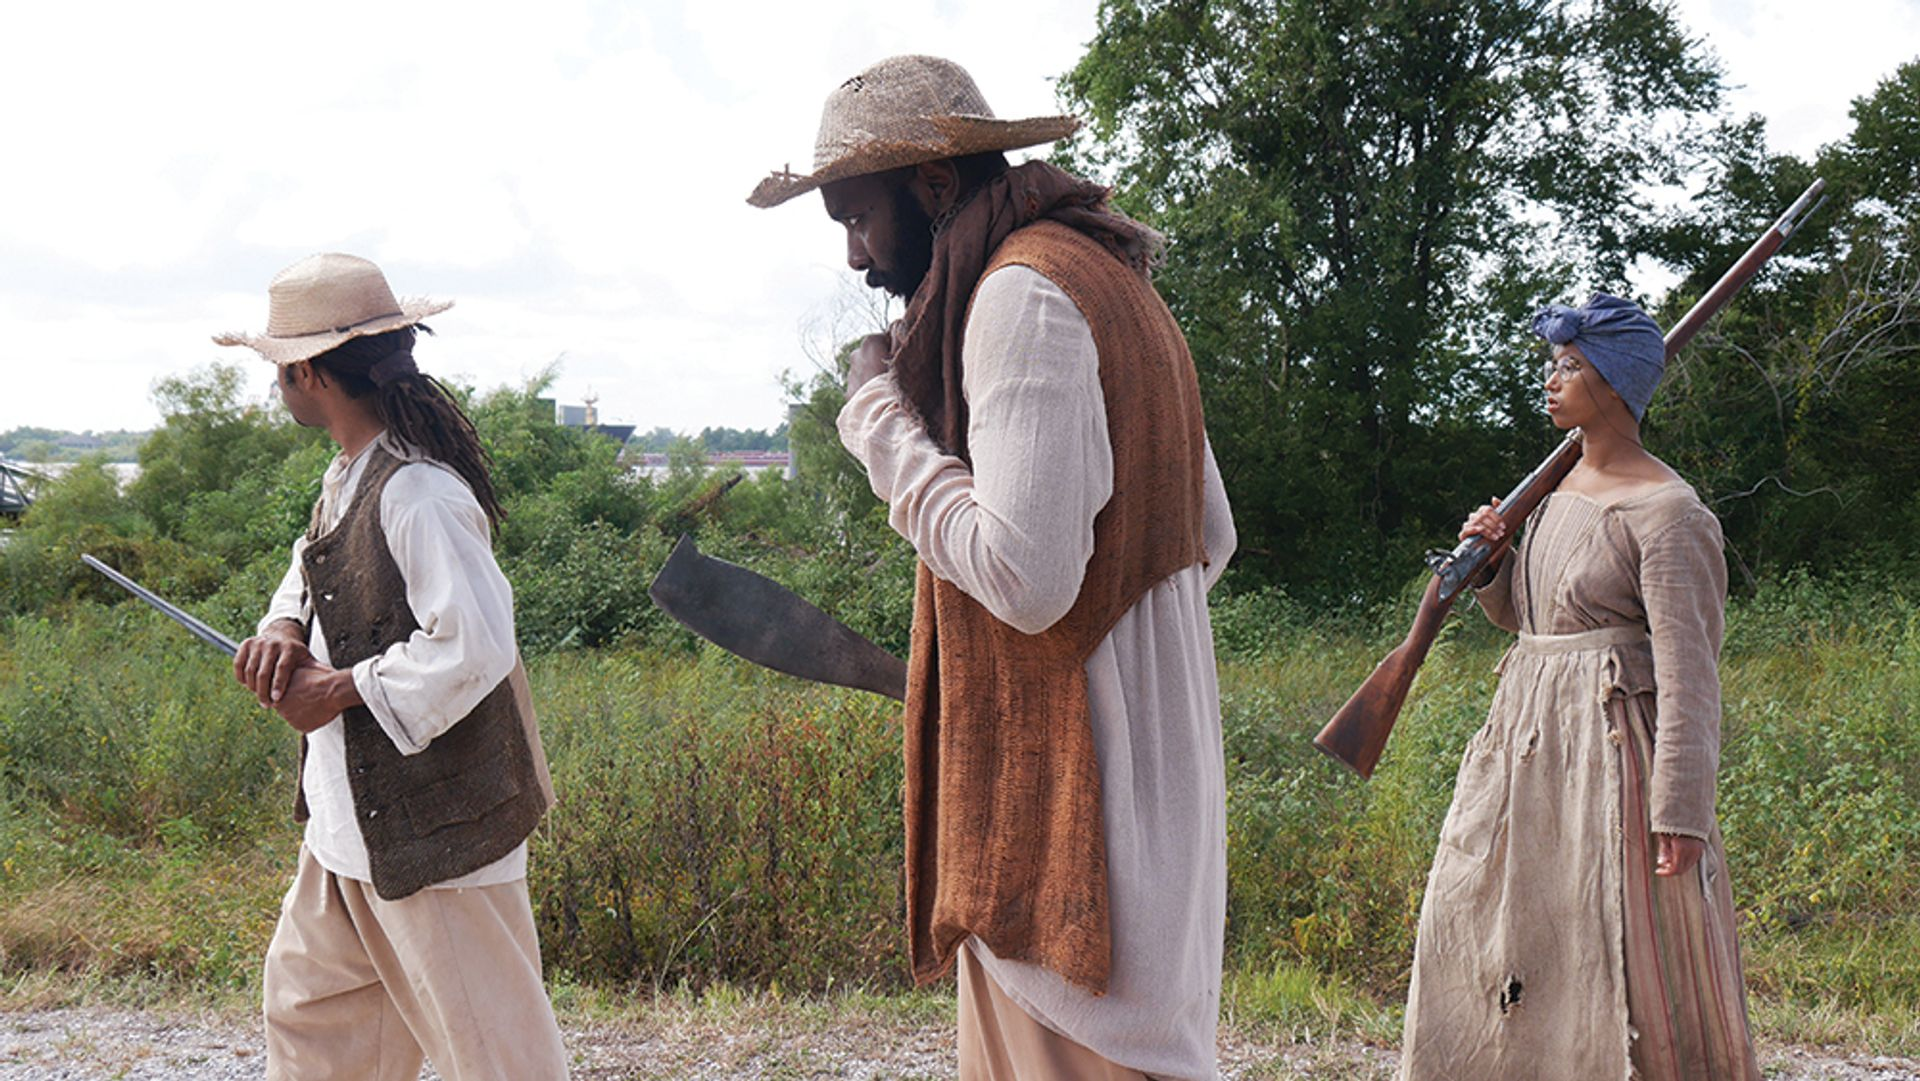 A rehearsal in period dress for the Slave Rebellion Re-enactment courtesy of the artist